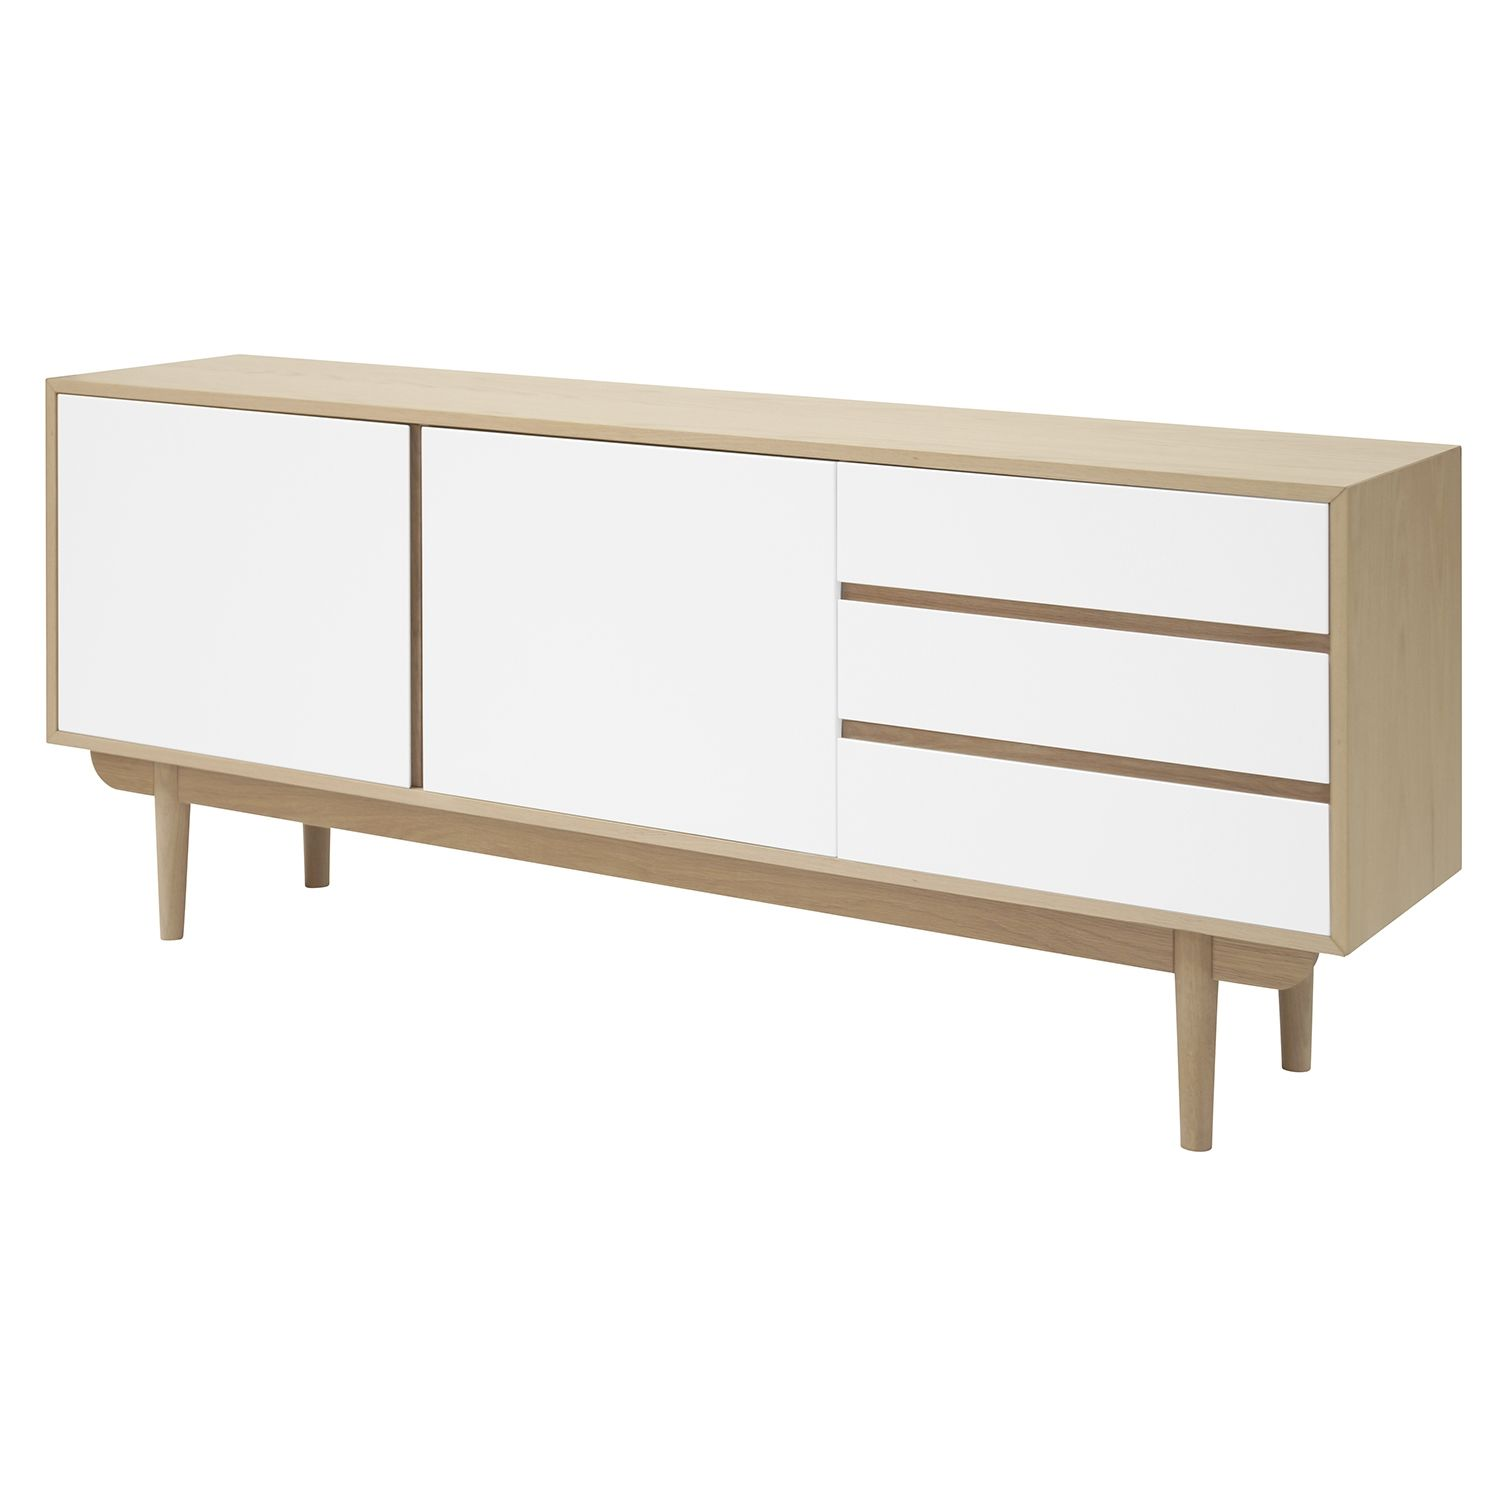 Skaga dressoir Interstil